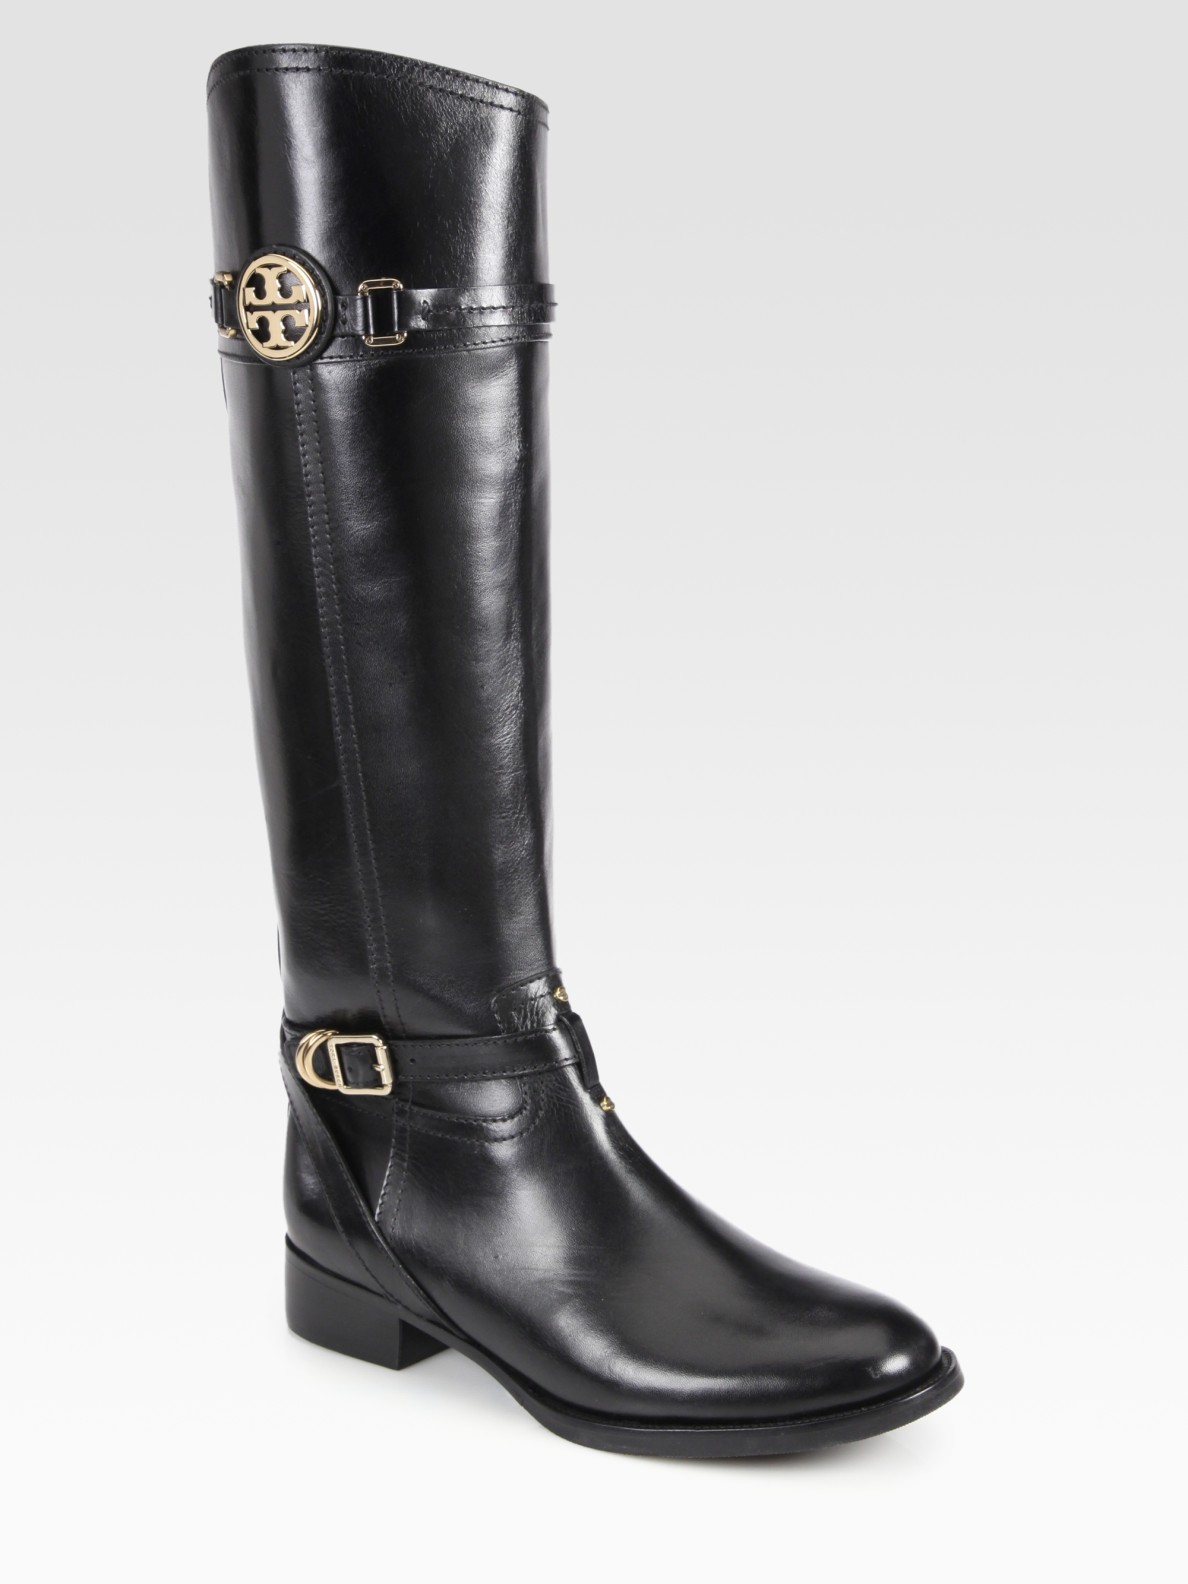 Tory Burch Calista Leather Riding Boots In Black Lyst